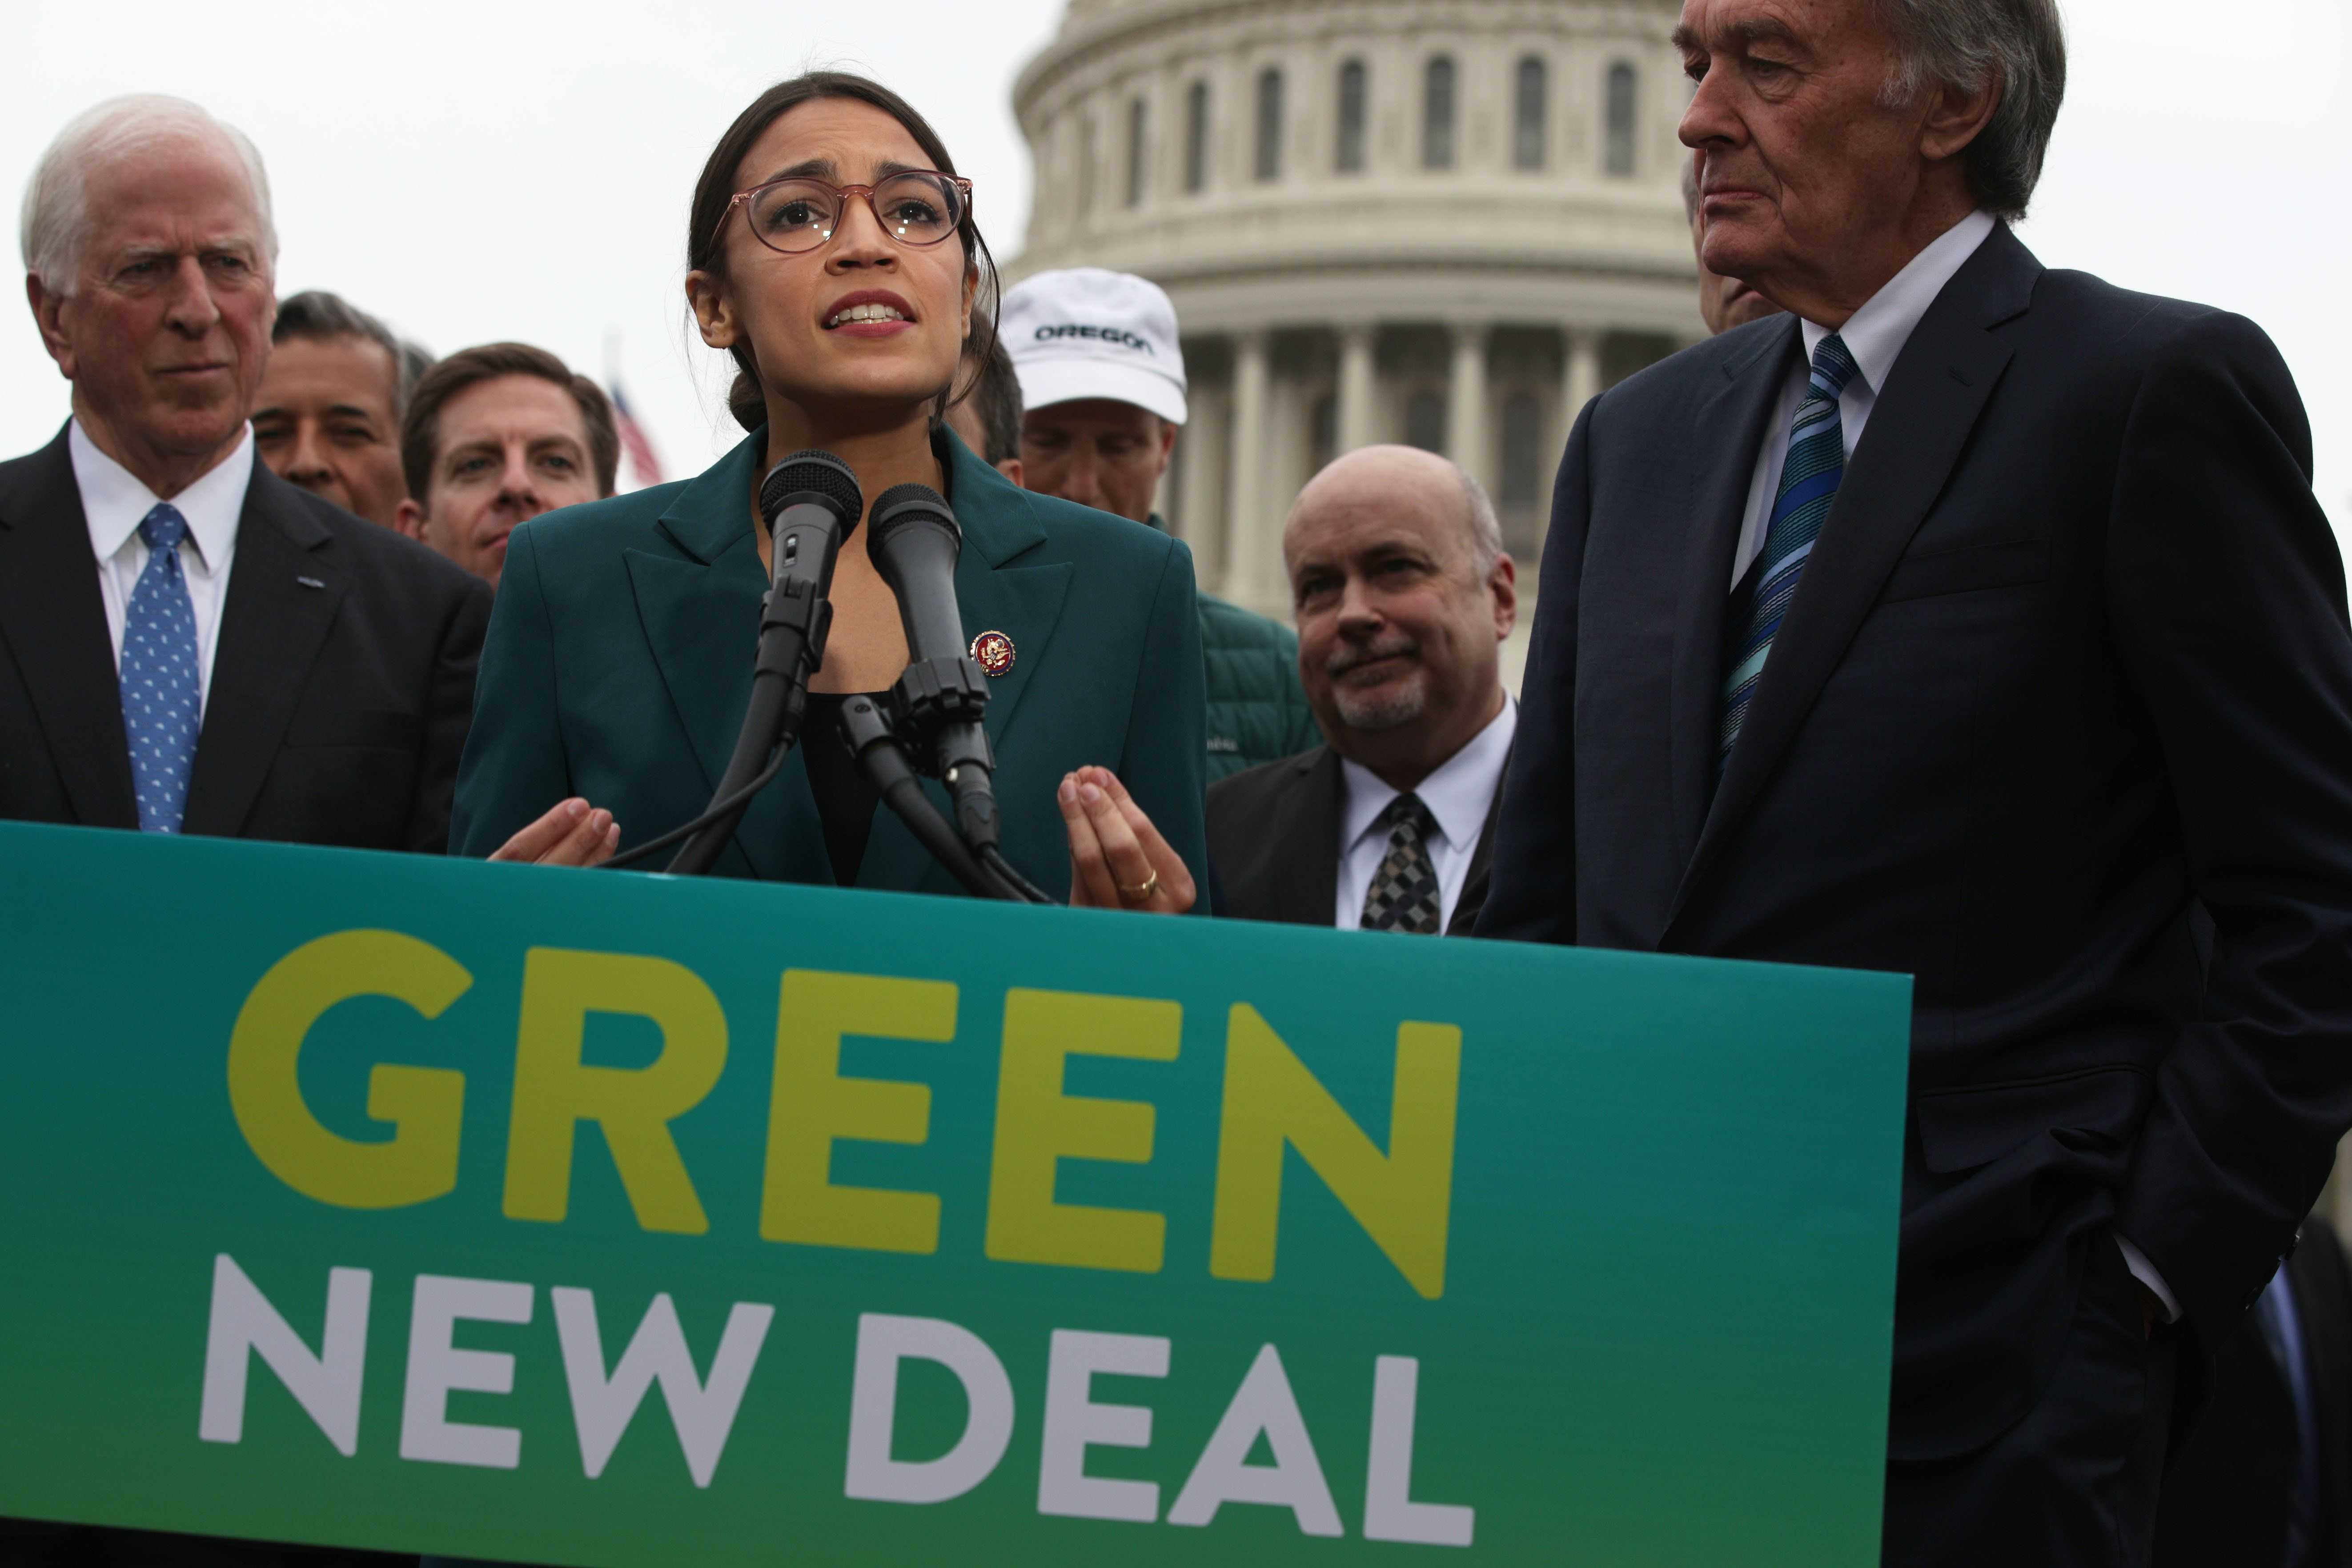 Green New Deal Has 2020 Dems On Board, But Party Leaders Tread